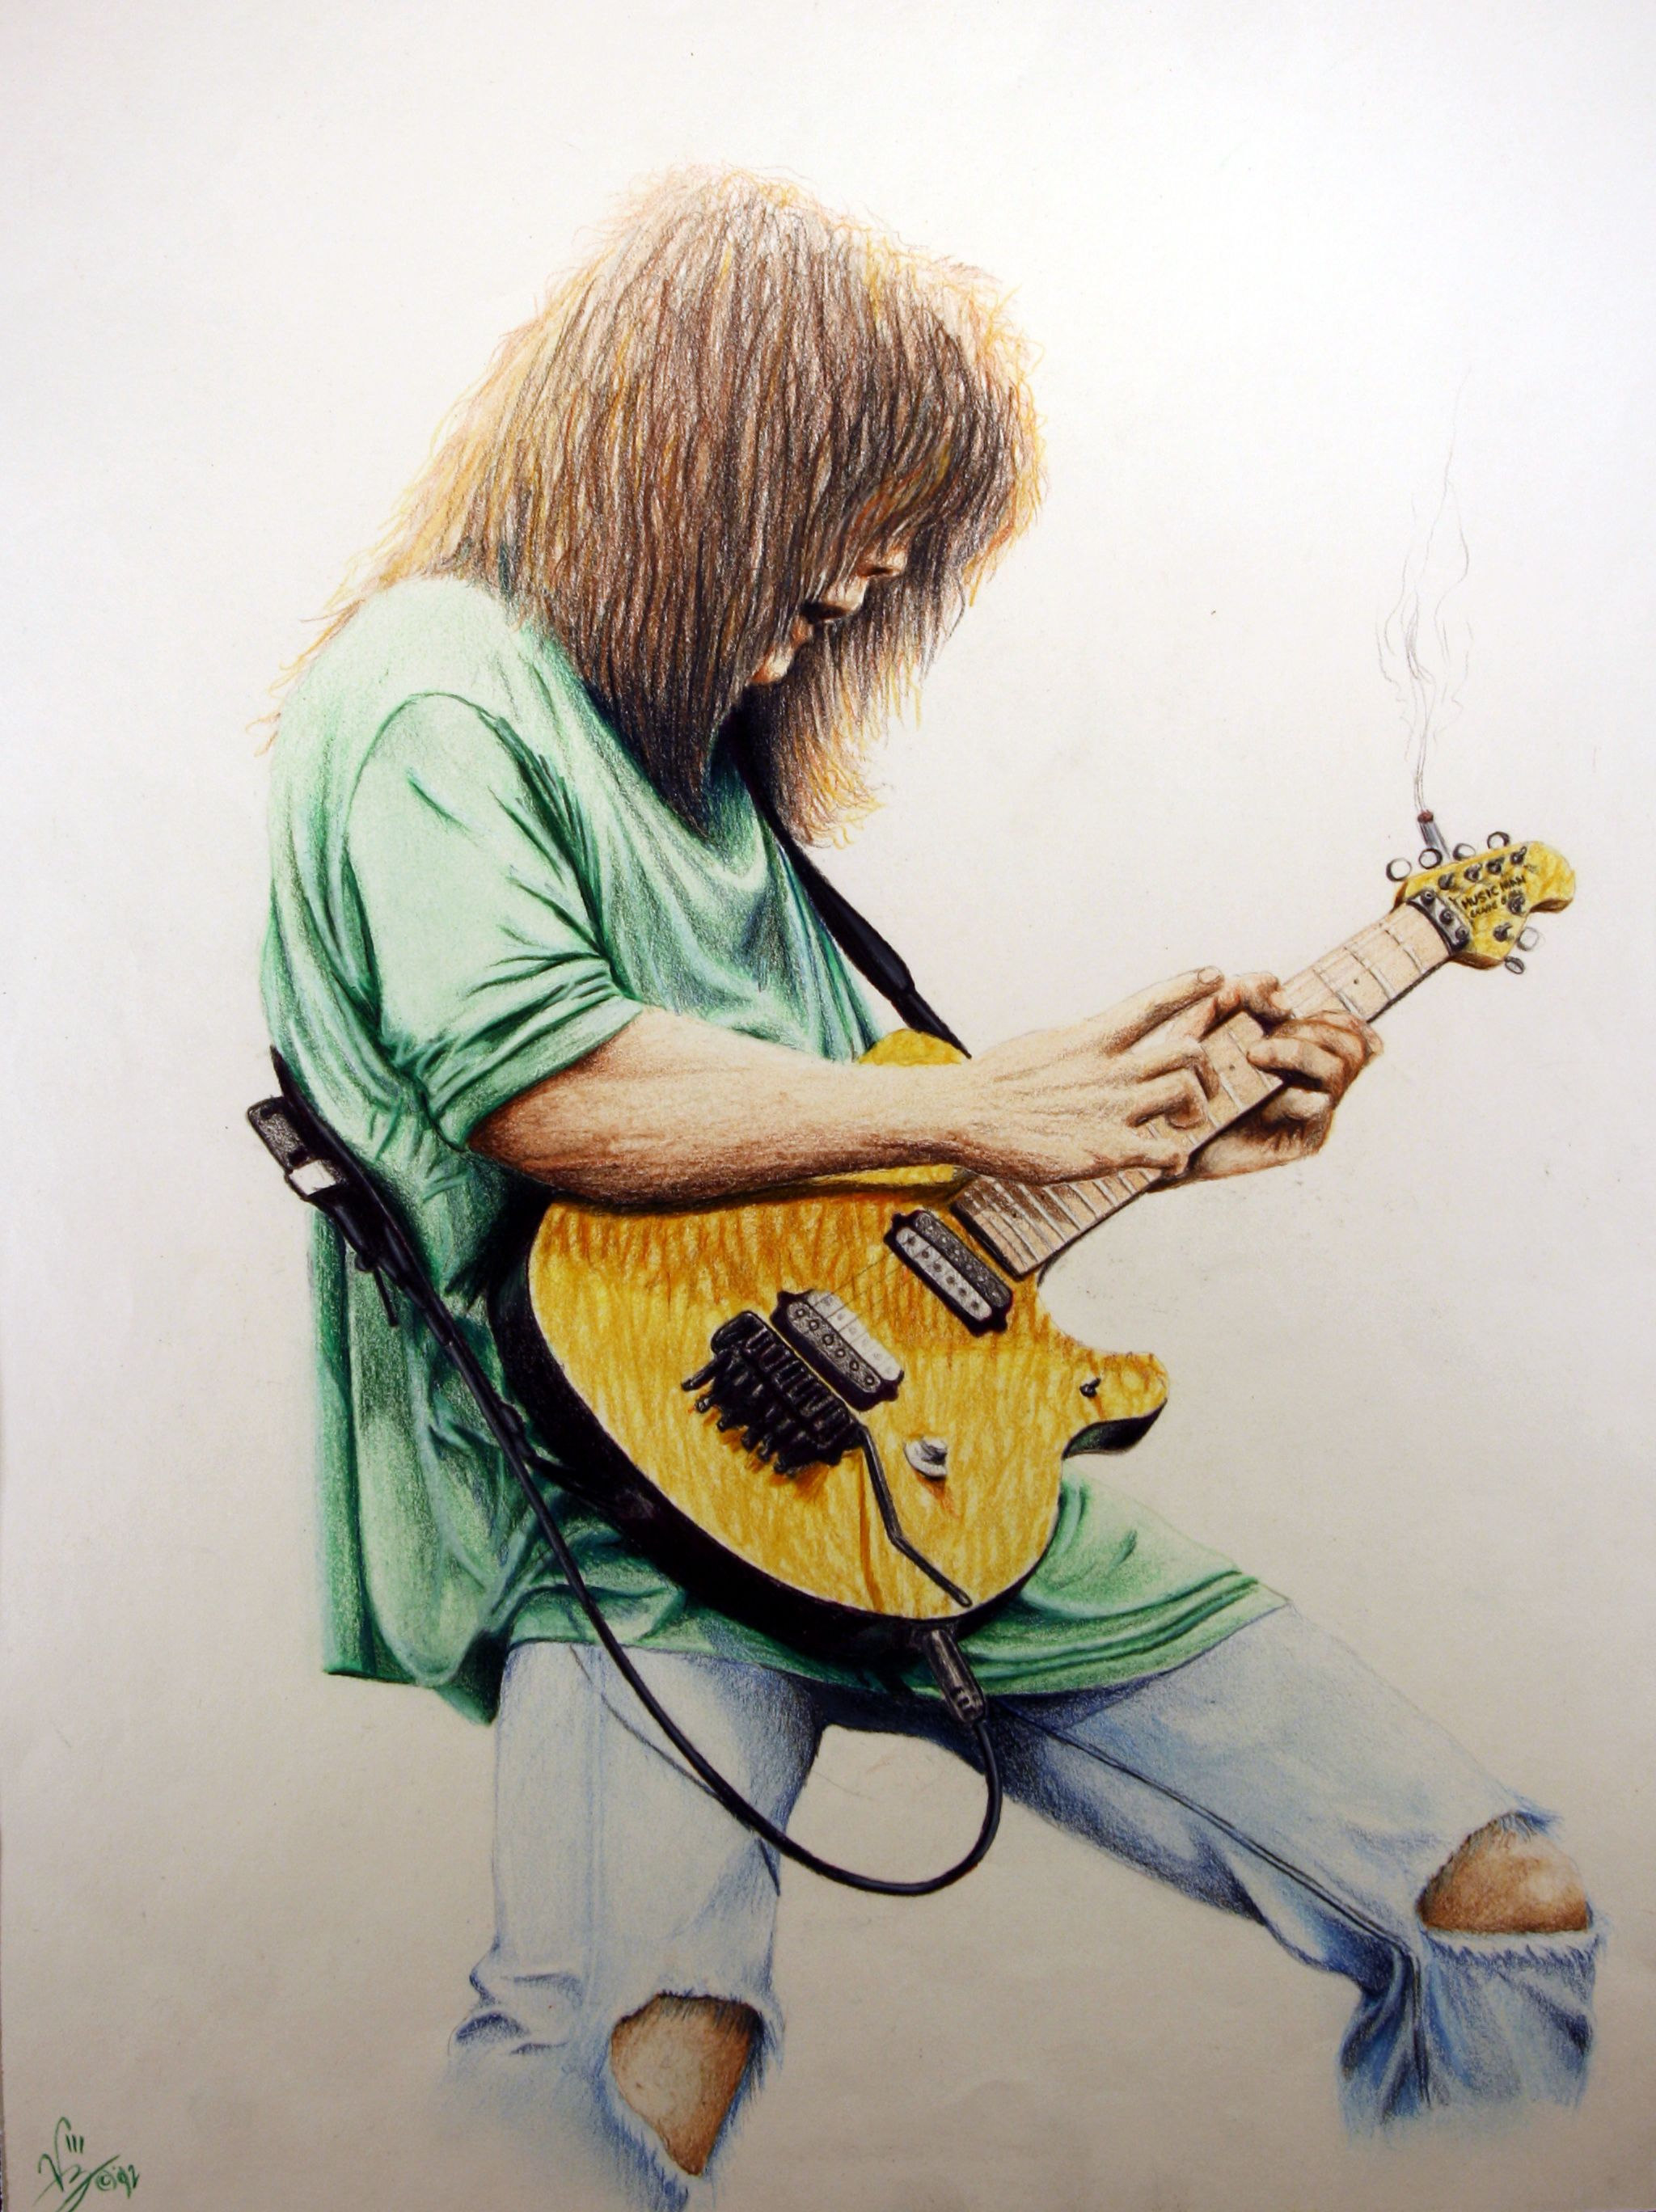 Eddie Van Halen 16 X 20 Color Pencil On Paper 1992 Eddie Van Halen Music Art Drawing Sketches